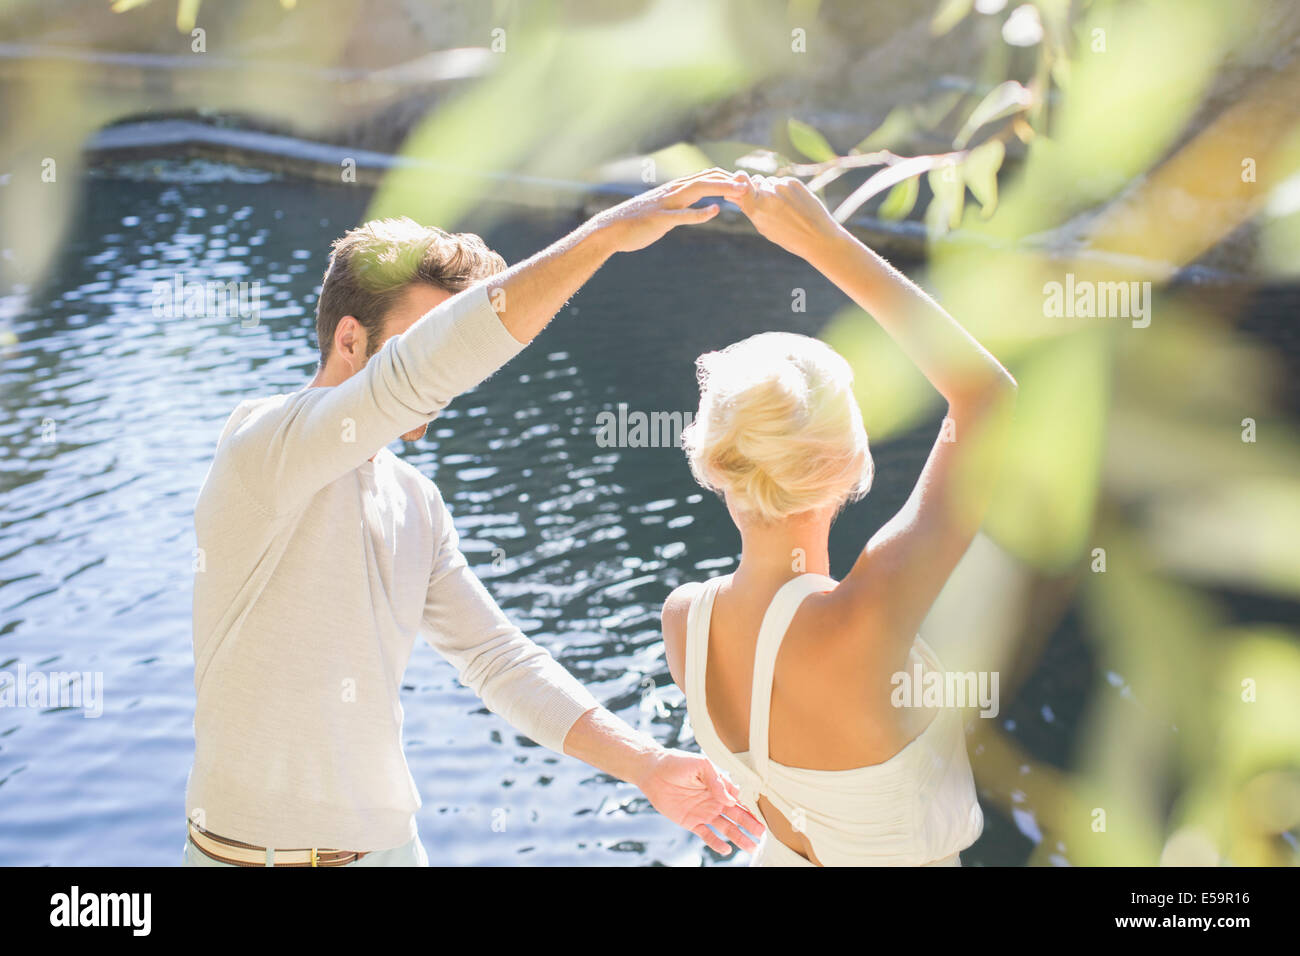 Couple dancing by pool Photo Stock